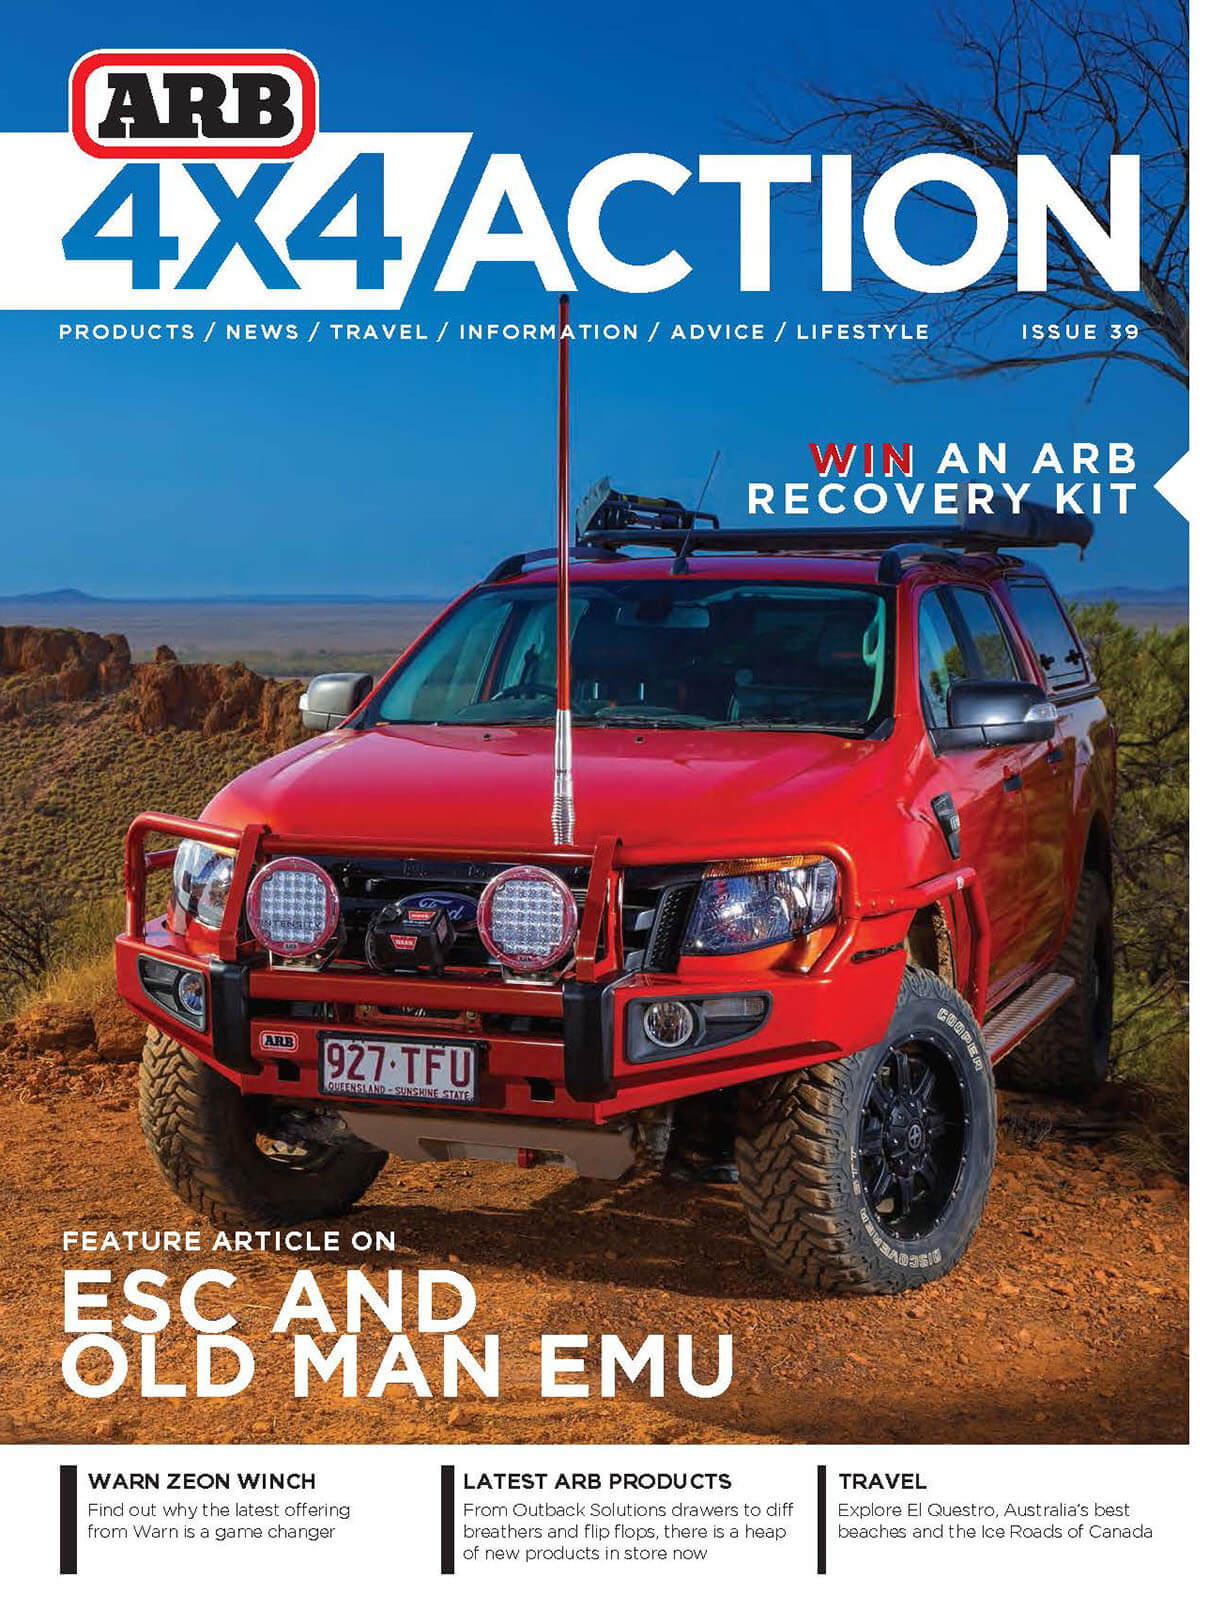 ARB Europe | Magazines Archive - Page 2 of 3 - ARB Europe